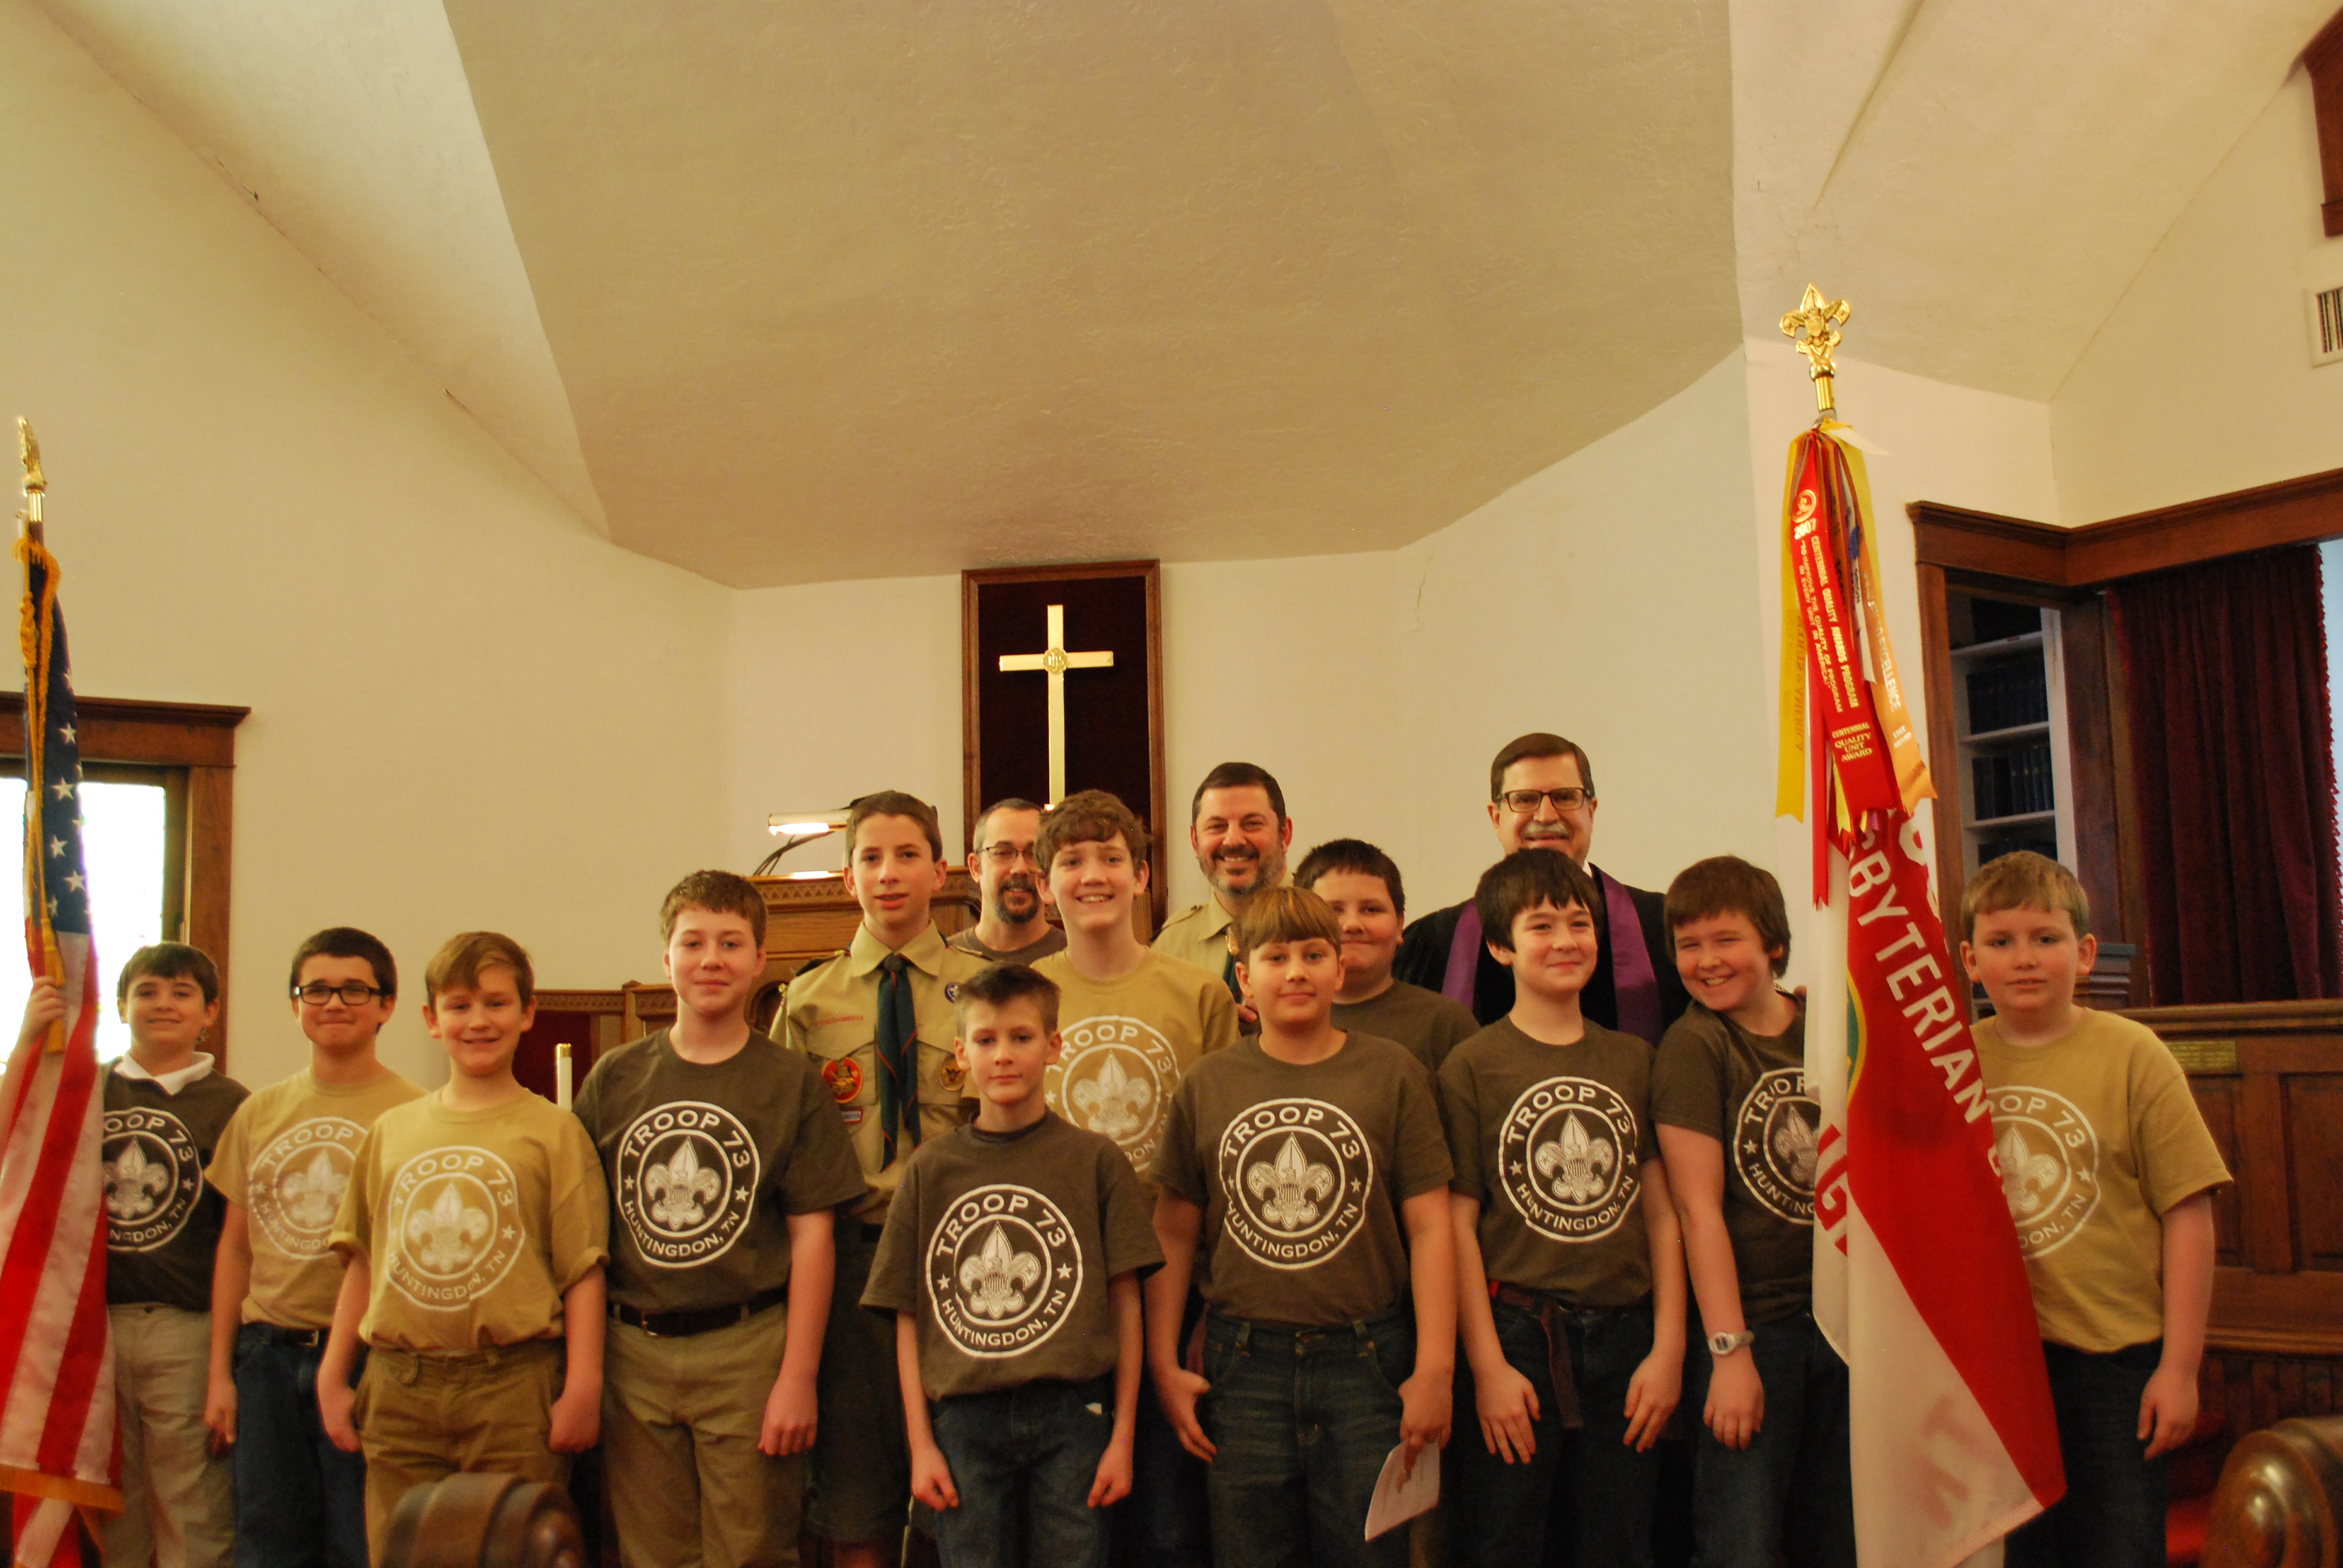 Scout Troop 73 Huntingdon Tennessee Attending An Important Event With Their Chartering Organization